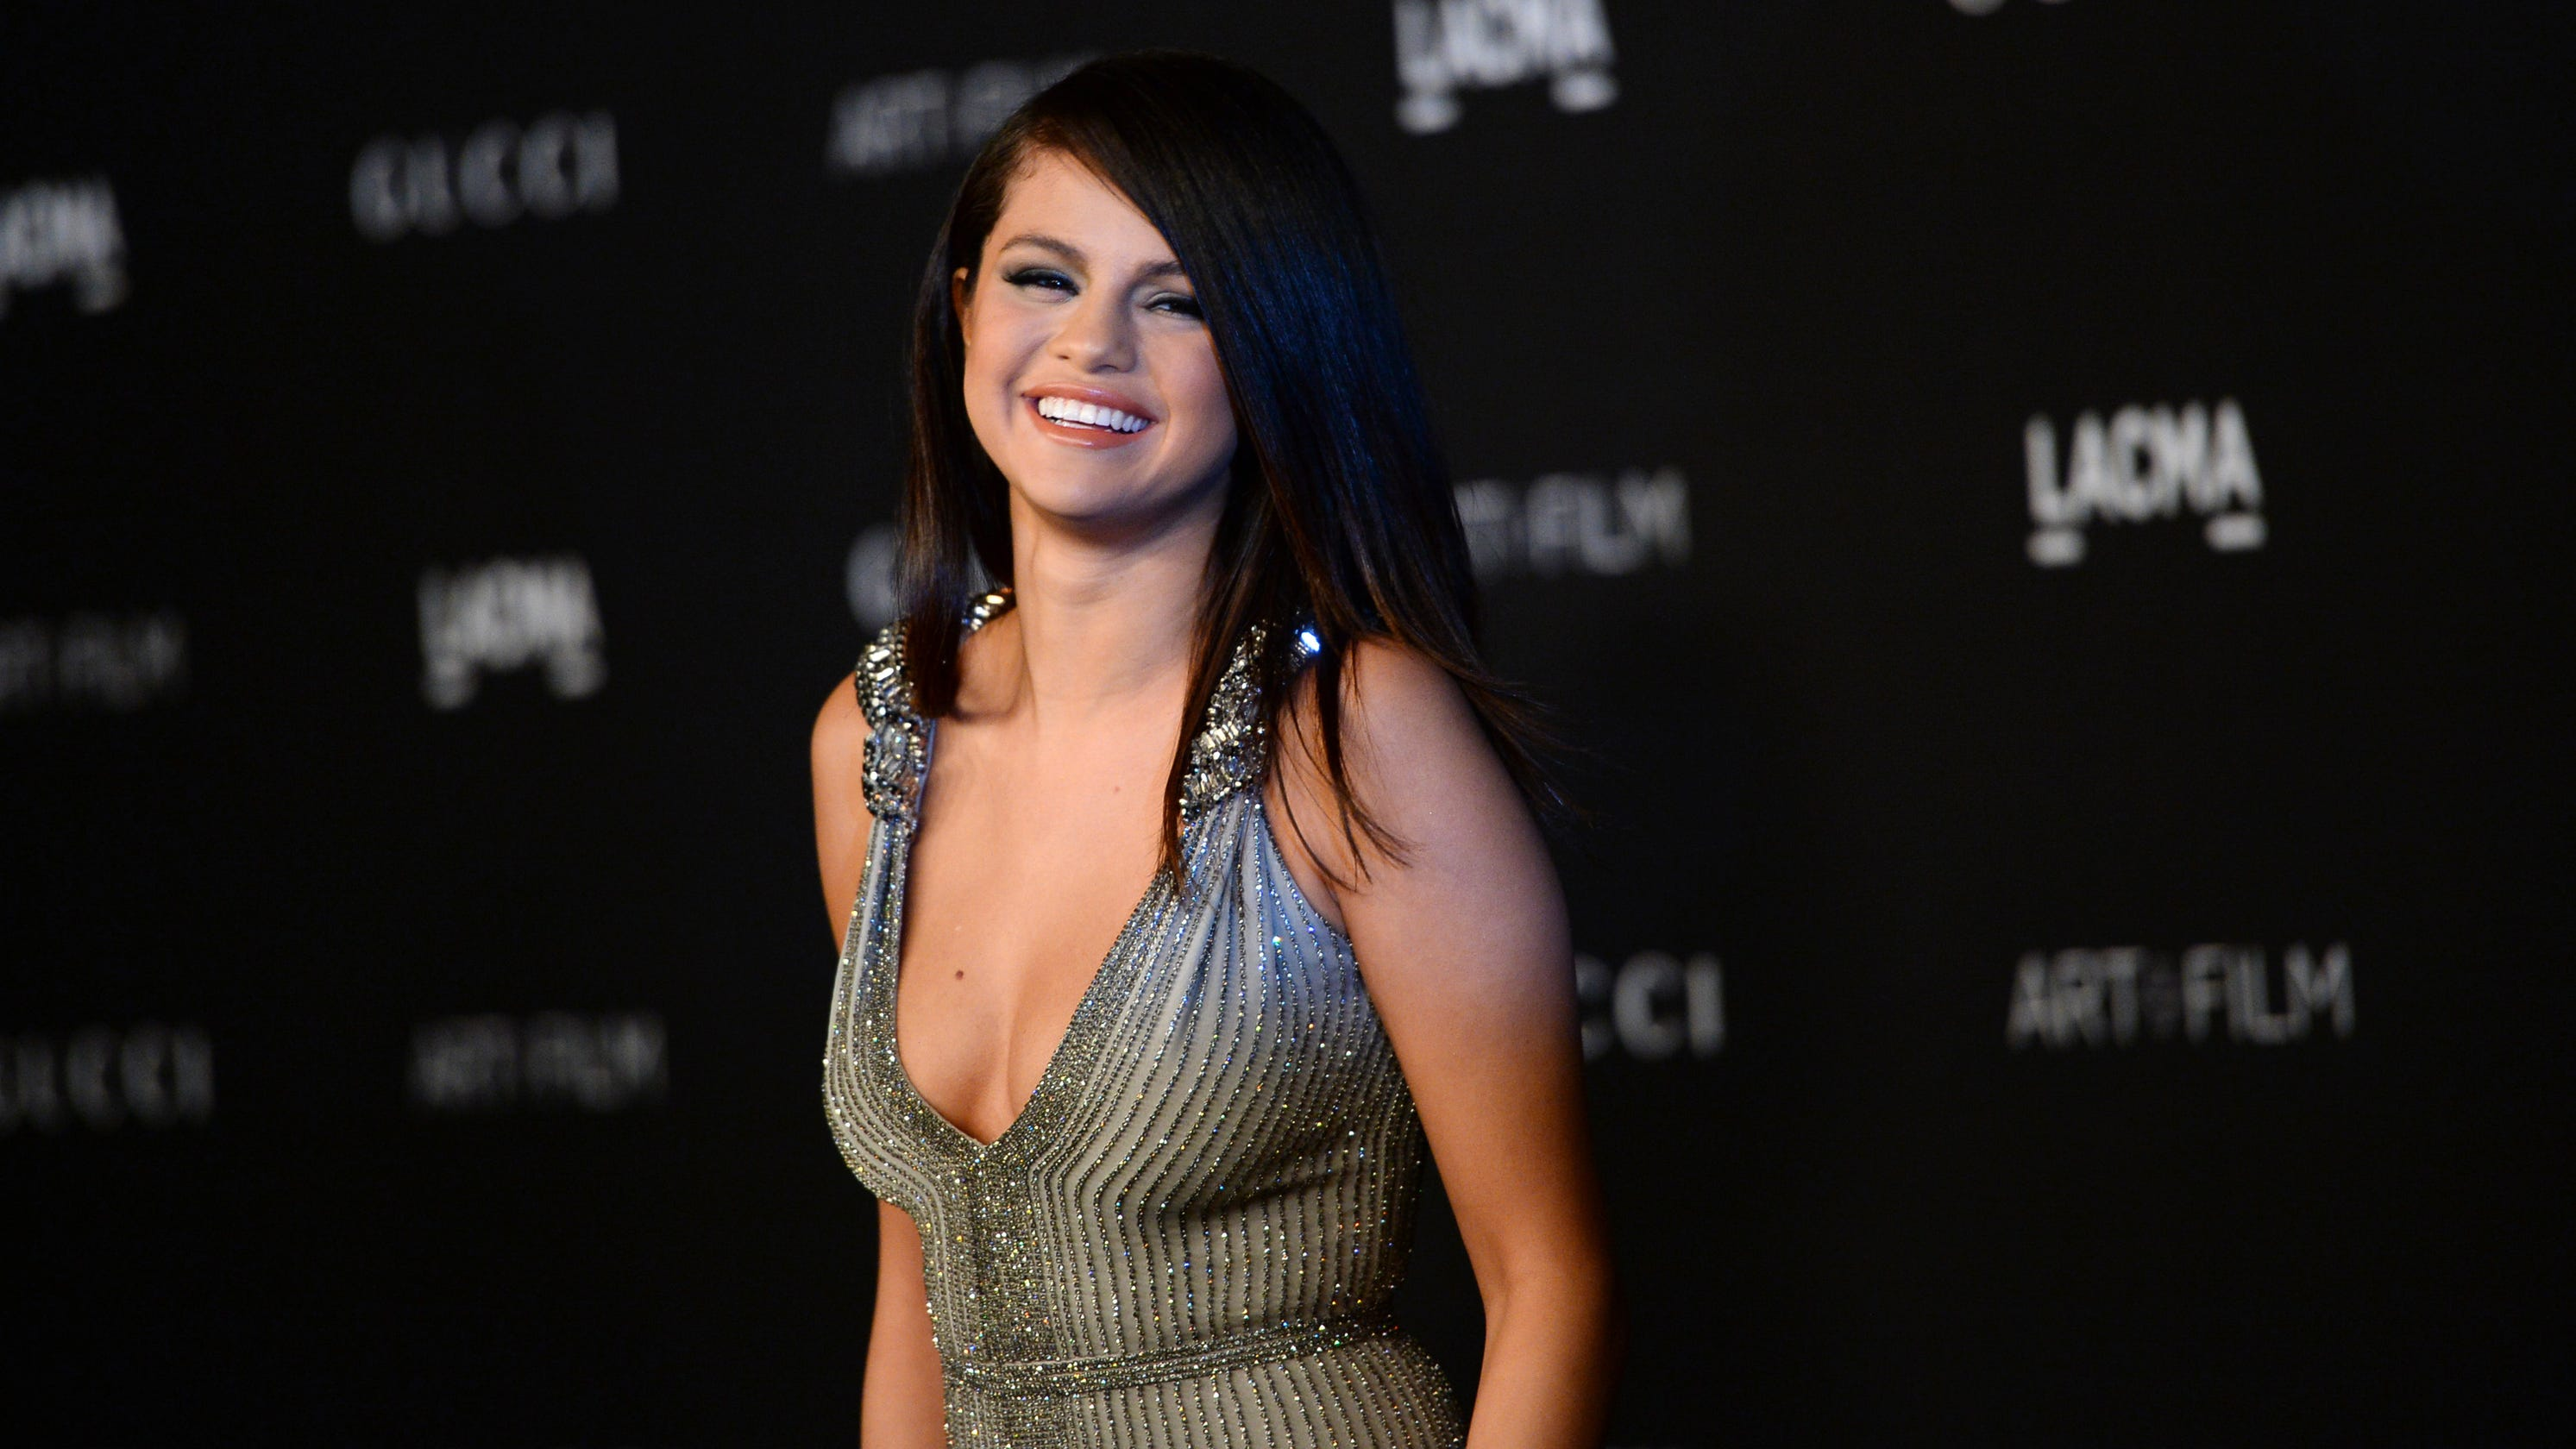 'I actually think I sing better in Spanish': Selena Gomez drops new Spanish single 'De Una Vez' – USA TODAY